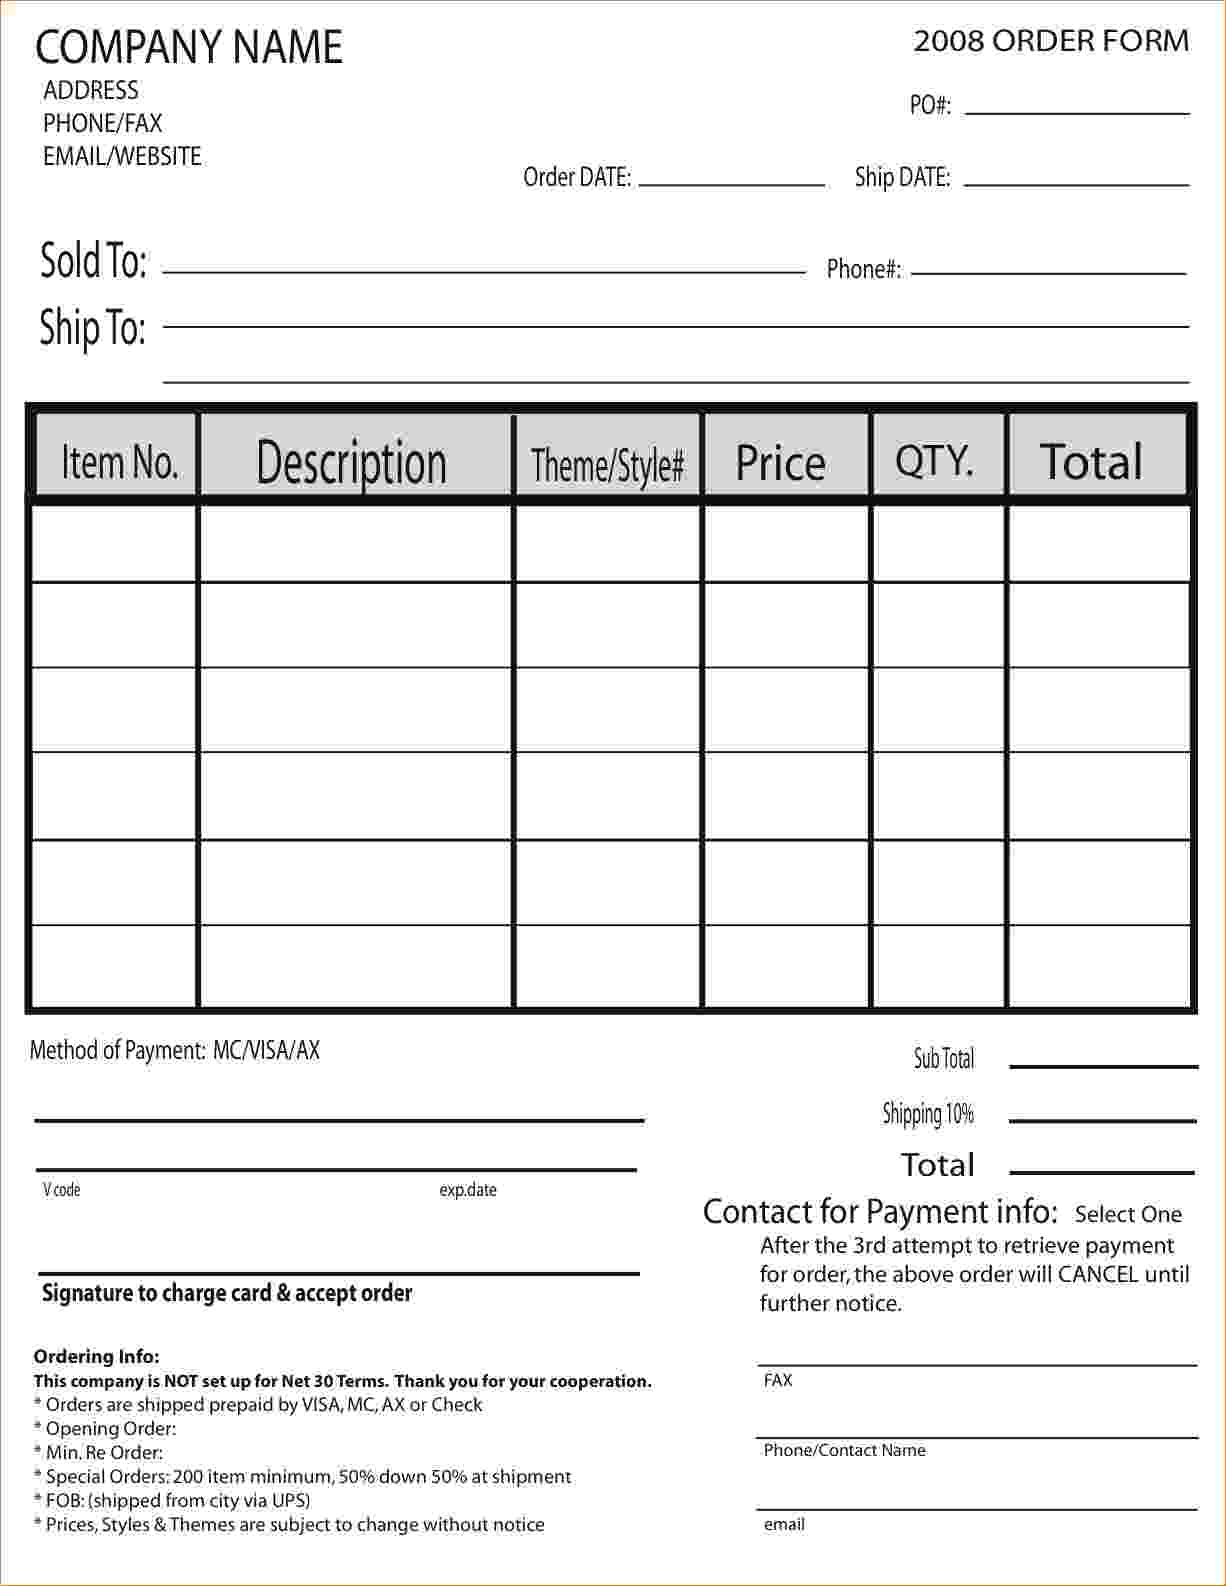 sample order form charlotte clergy coalition